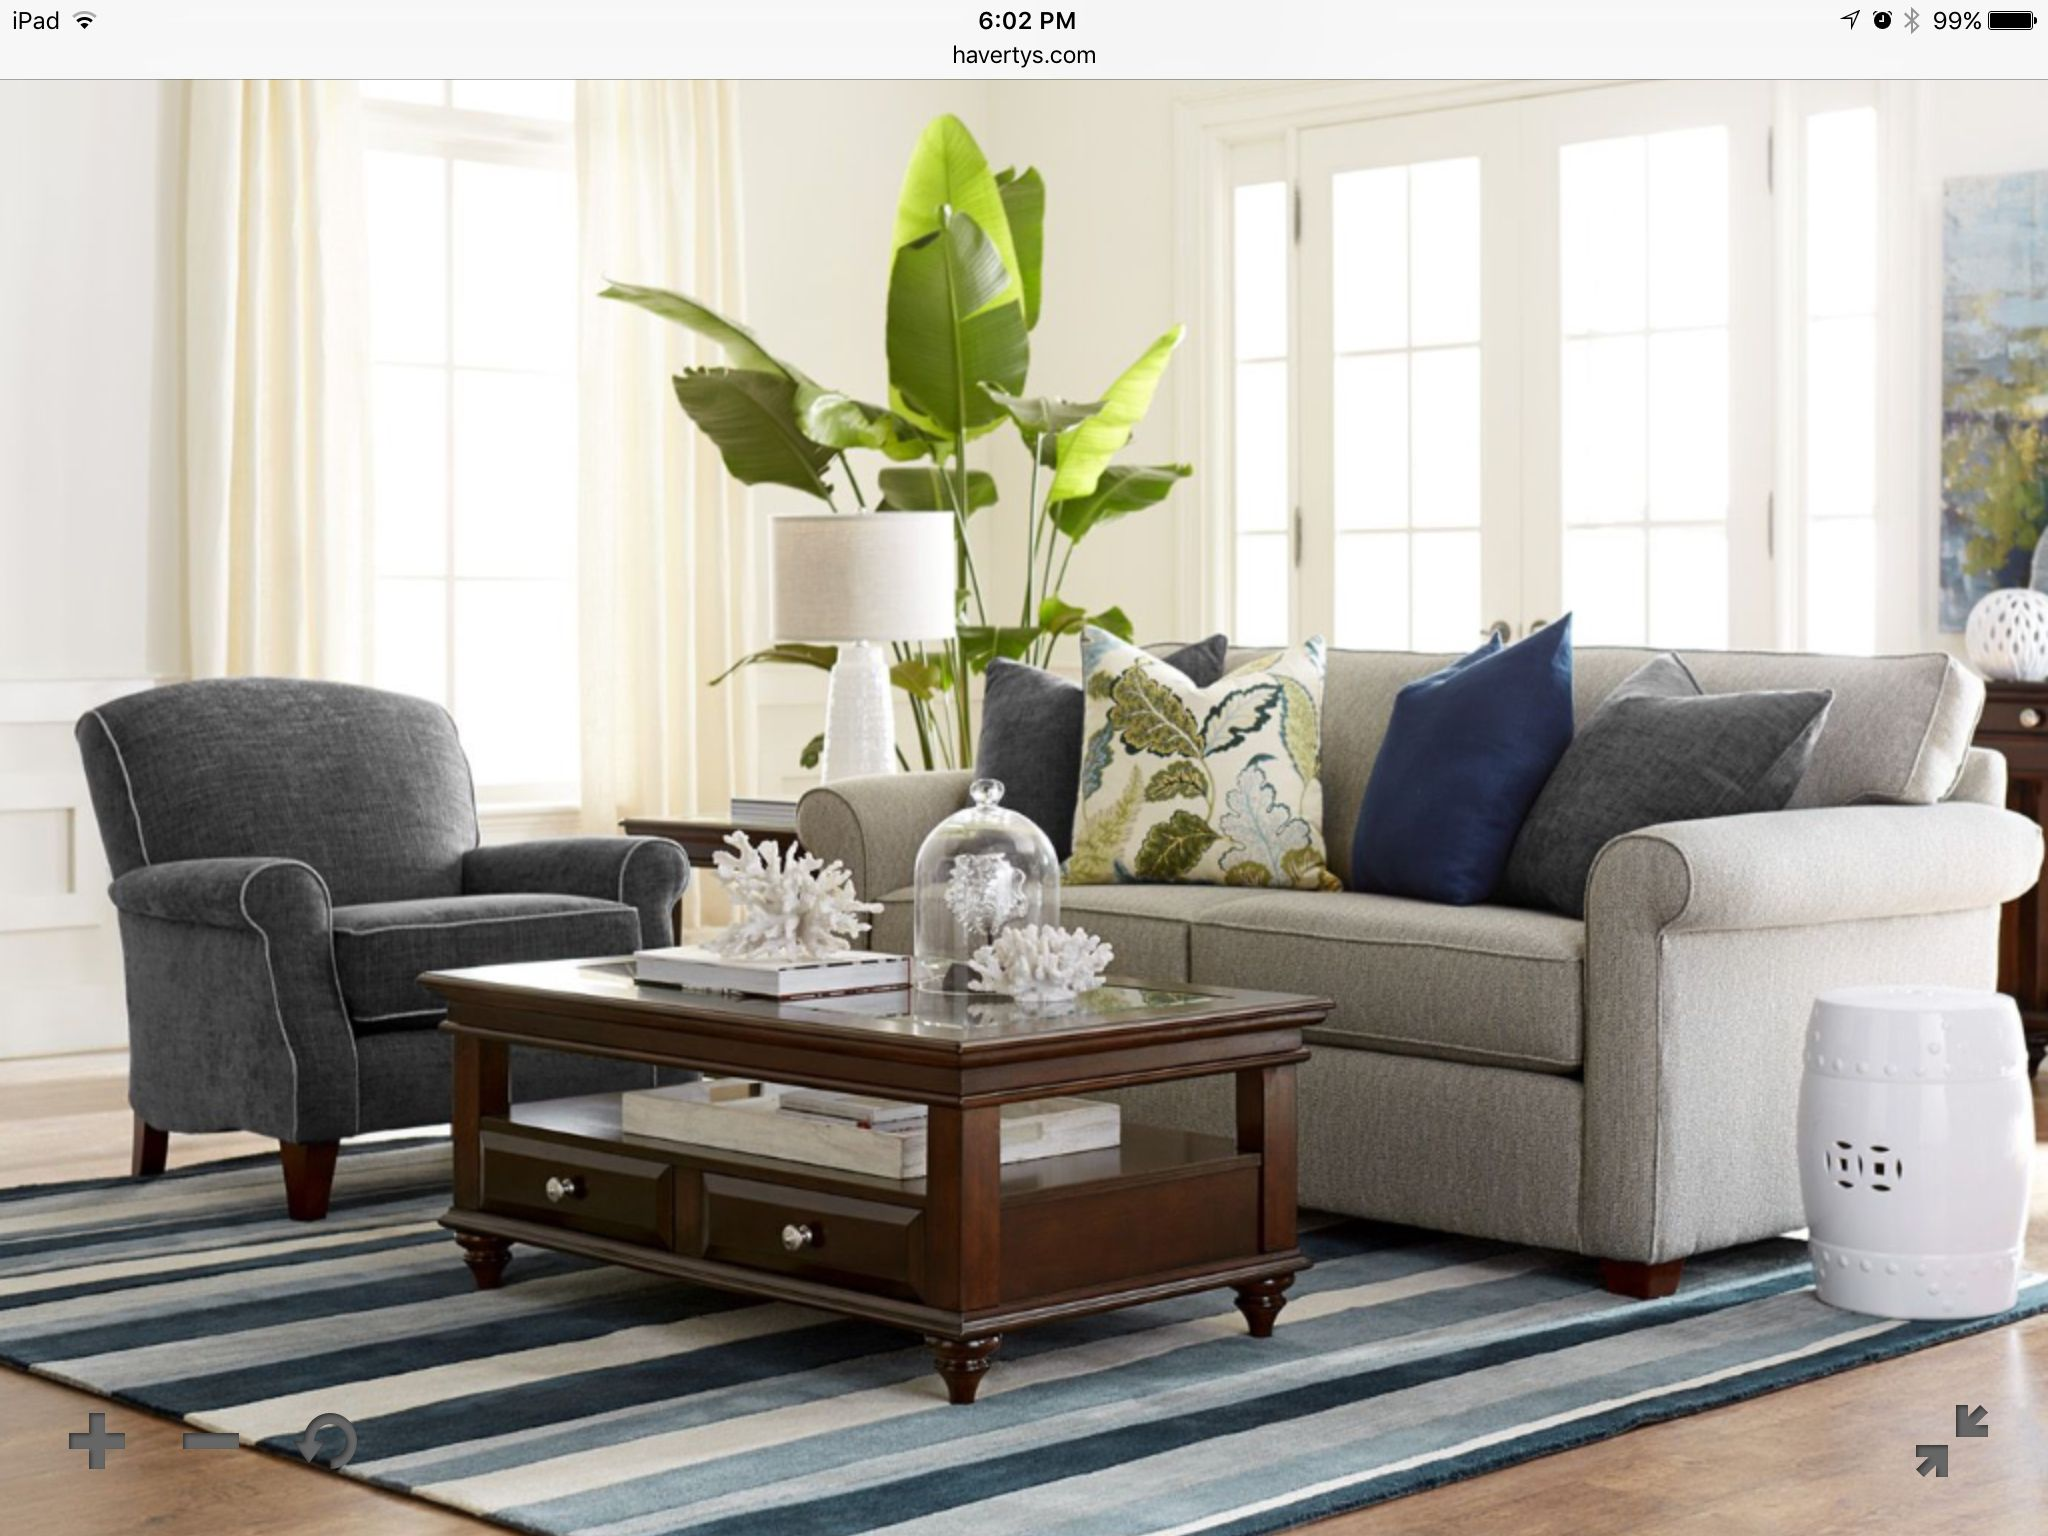 Haverty's sofa - Avery in fog. | Living room sets, Outdoor ... on Patio Living Room Set id=15380